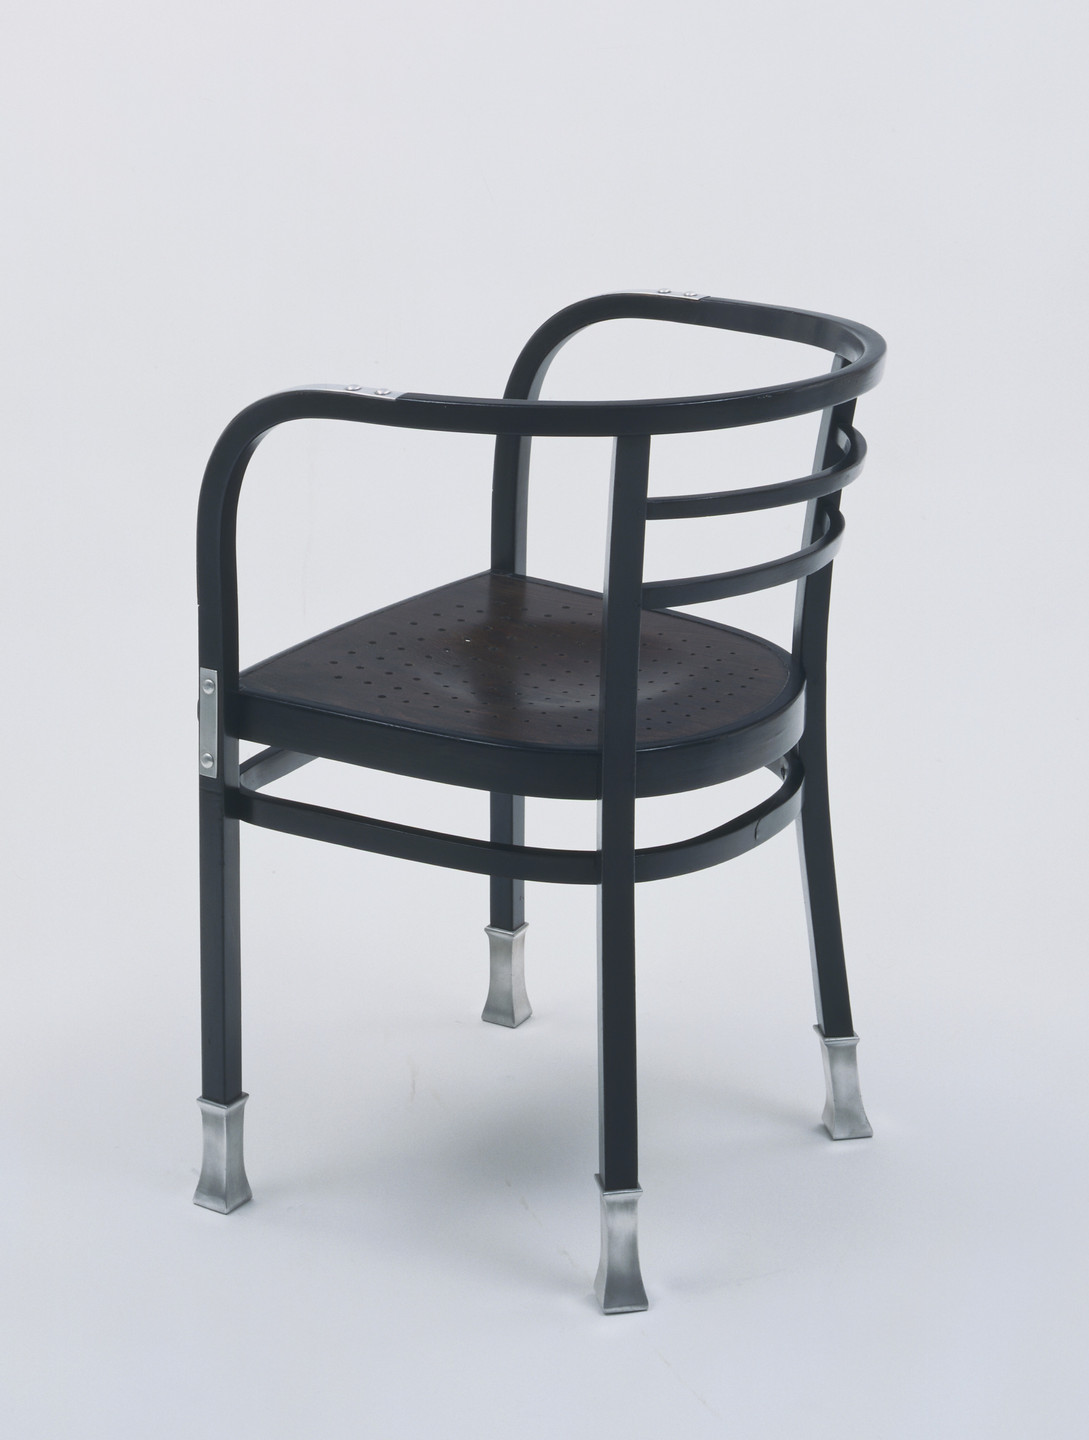 Otto Wagner. Armchair. 1902